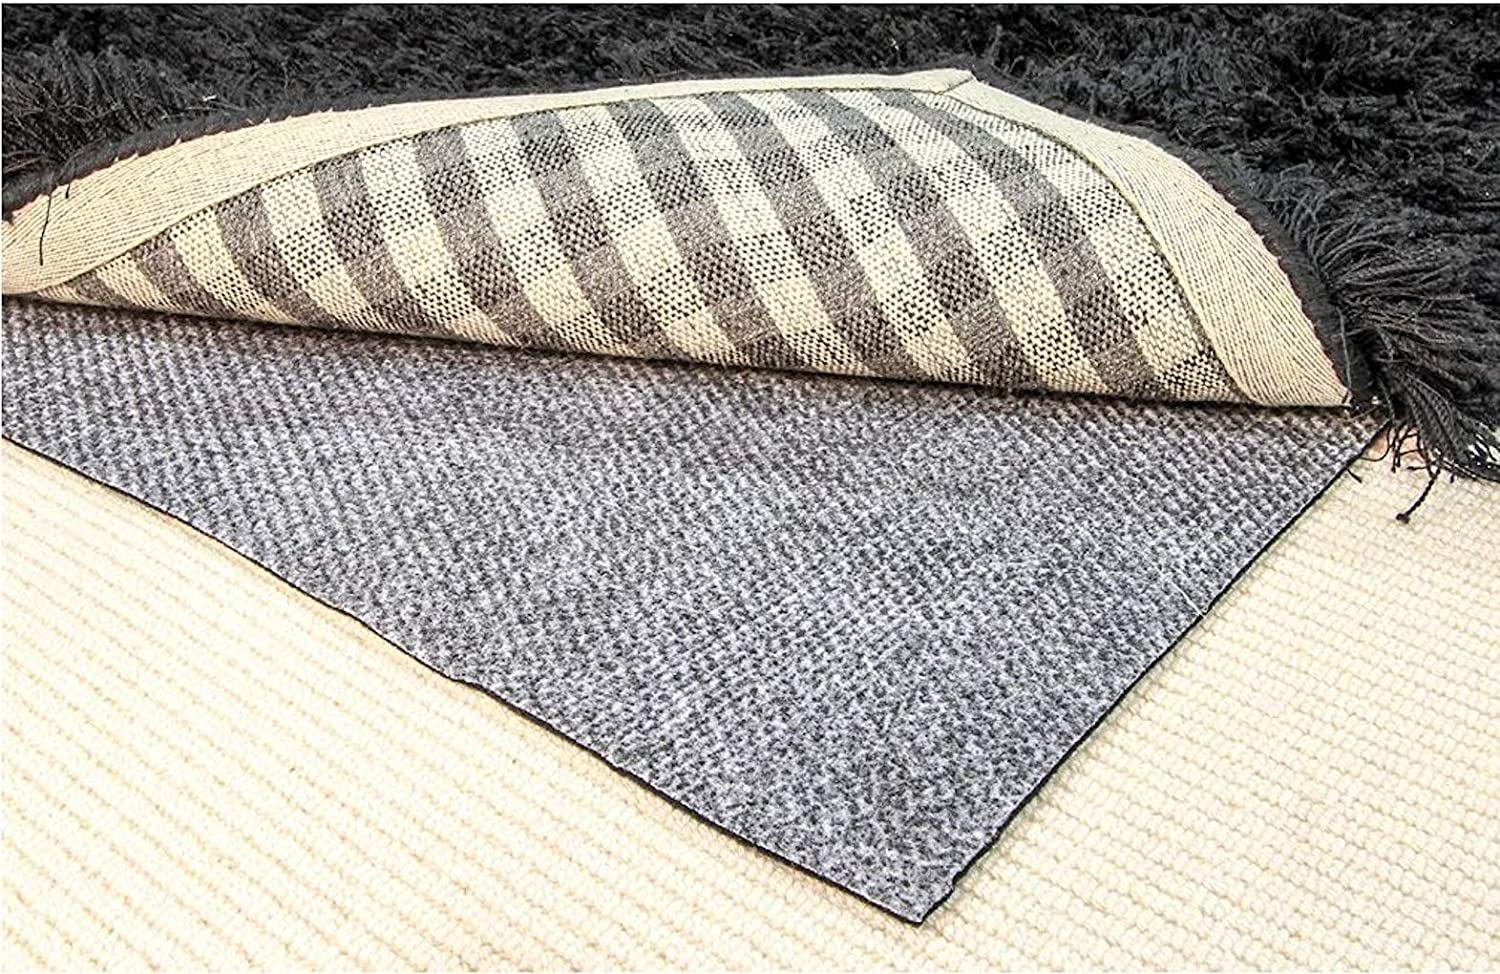 """Hold-a-Rug Plush 2' x 4' Nonskid, Nonslip Rug Pad, 1/4"""" Thick, Safe for All Floors and Carpet"""